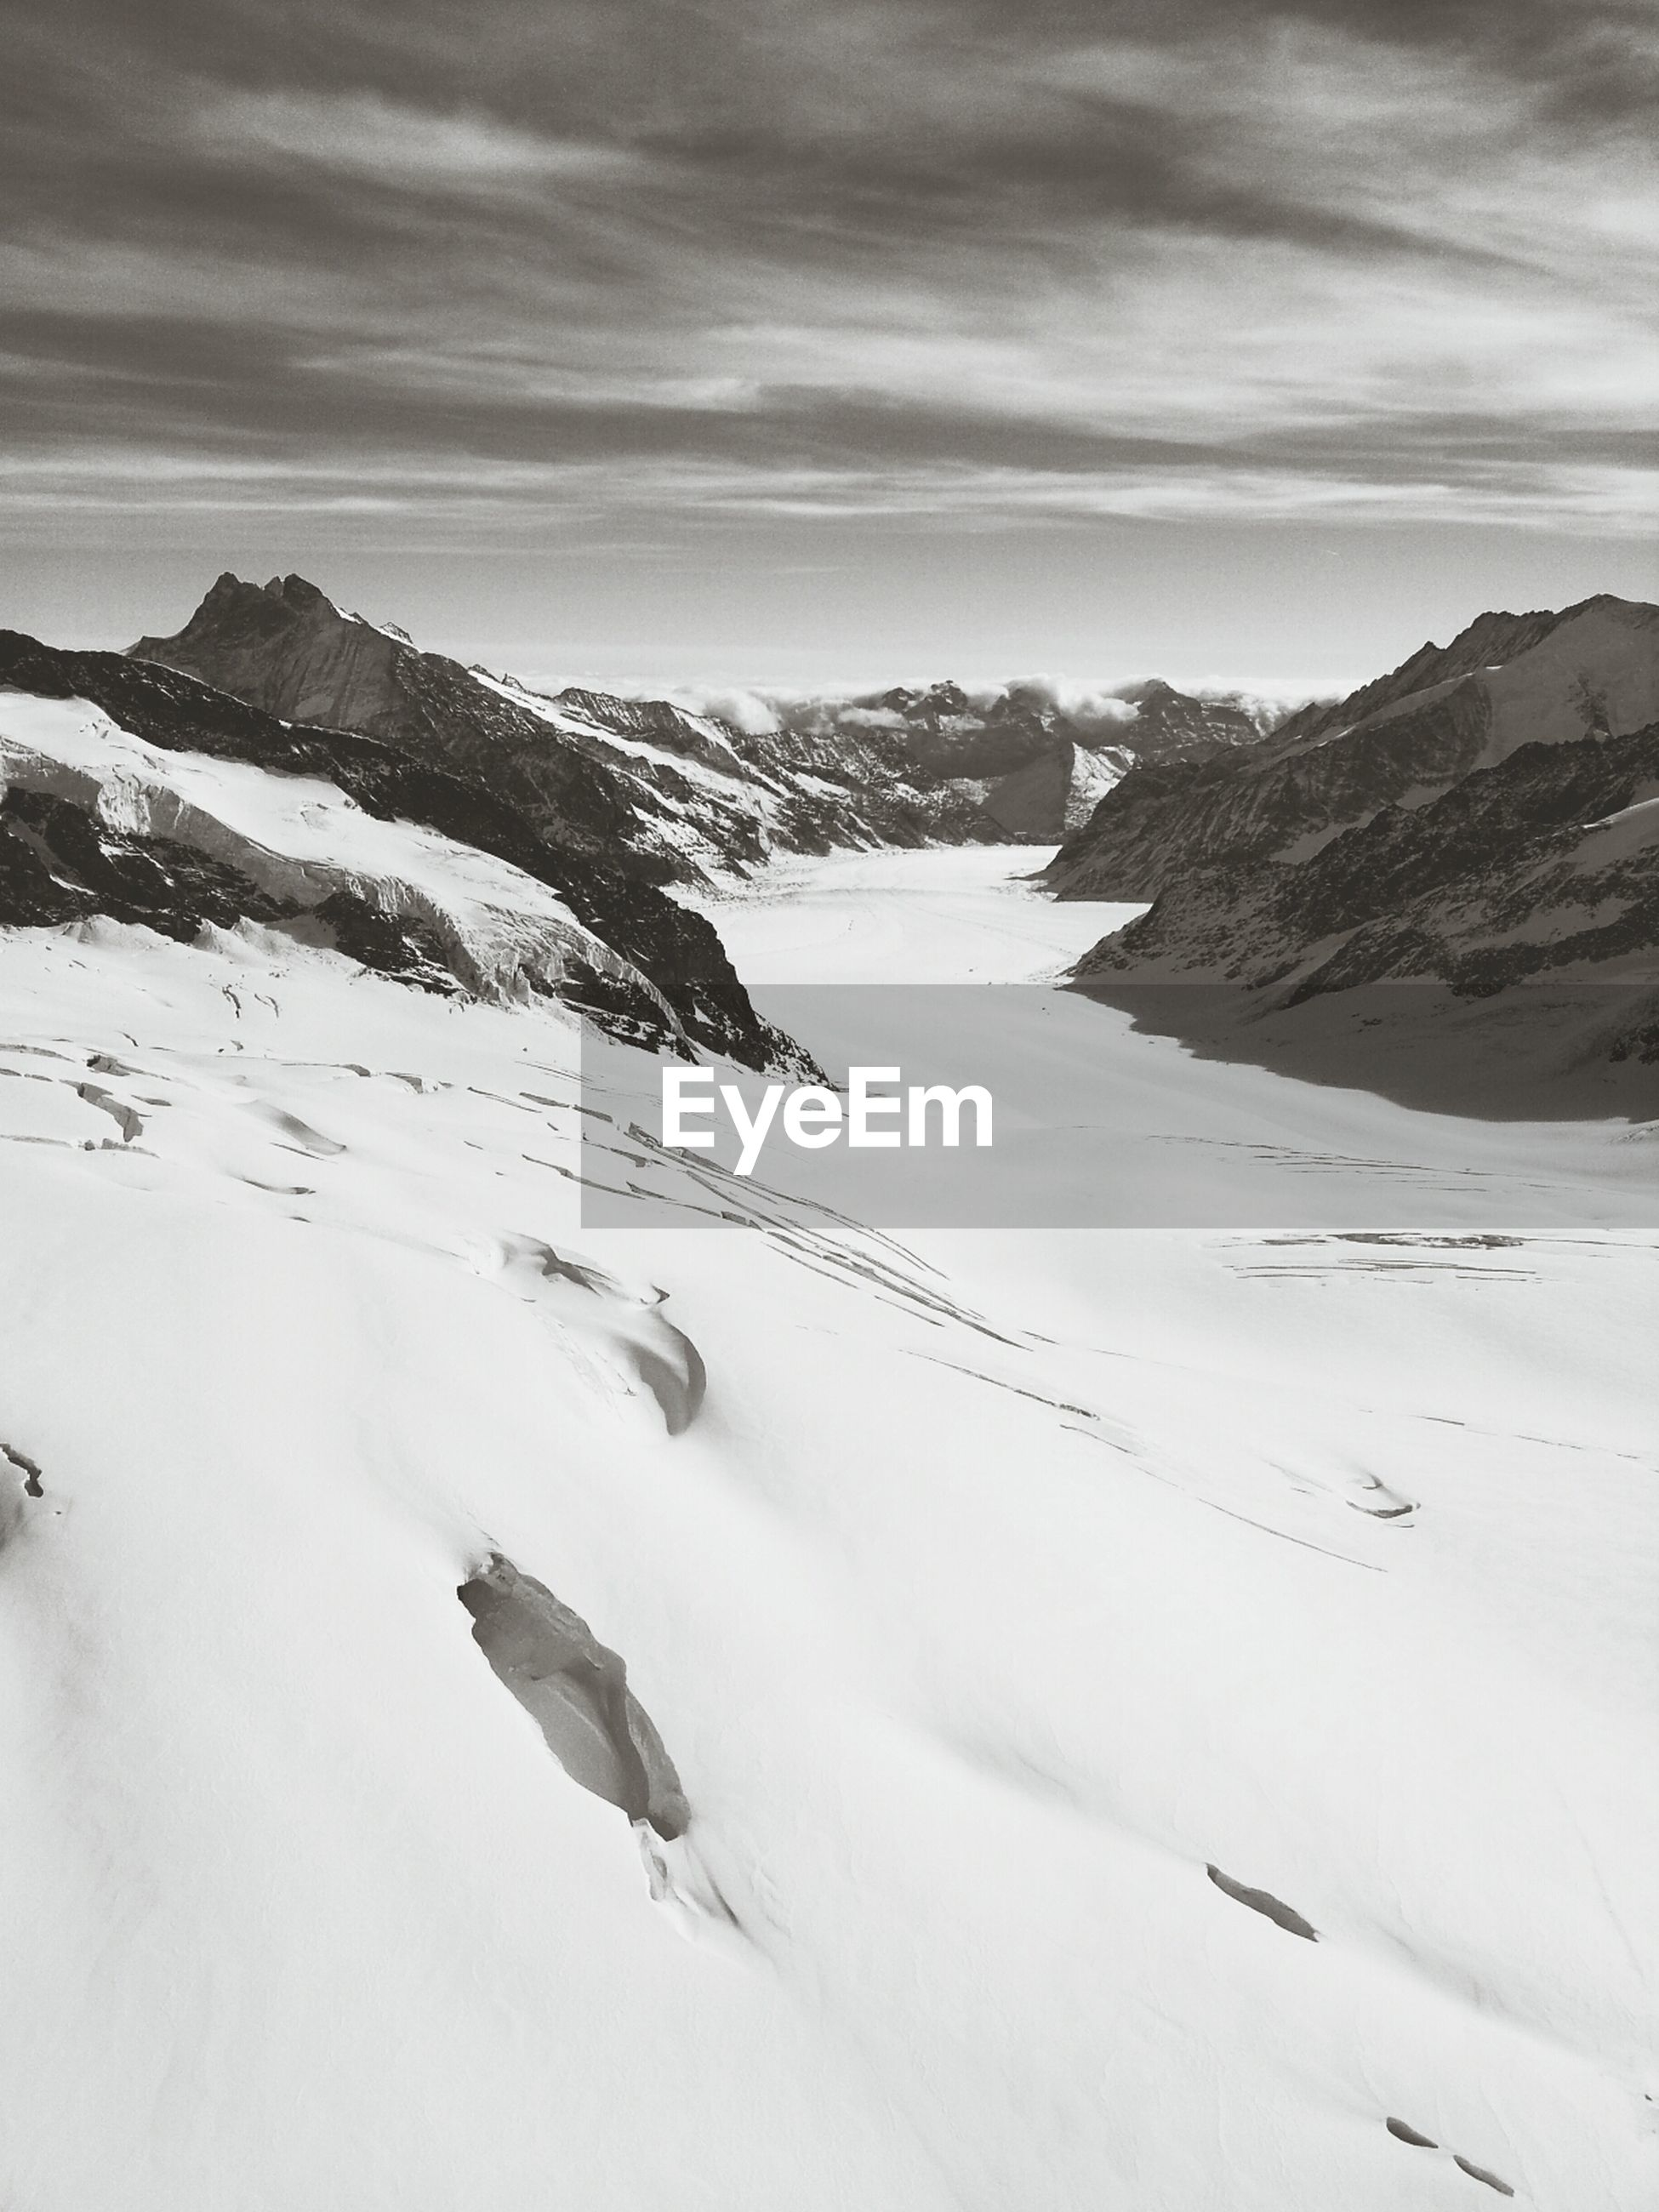 Elevated view of snowcapped mountain